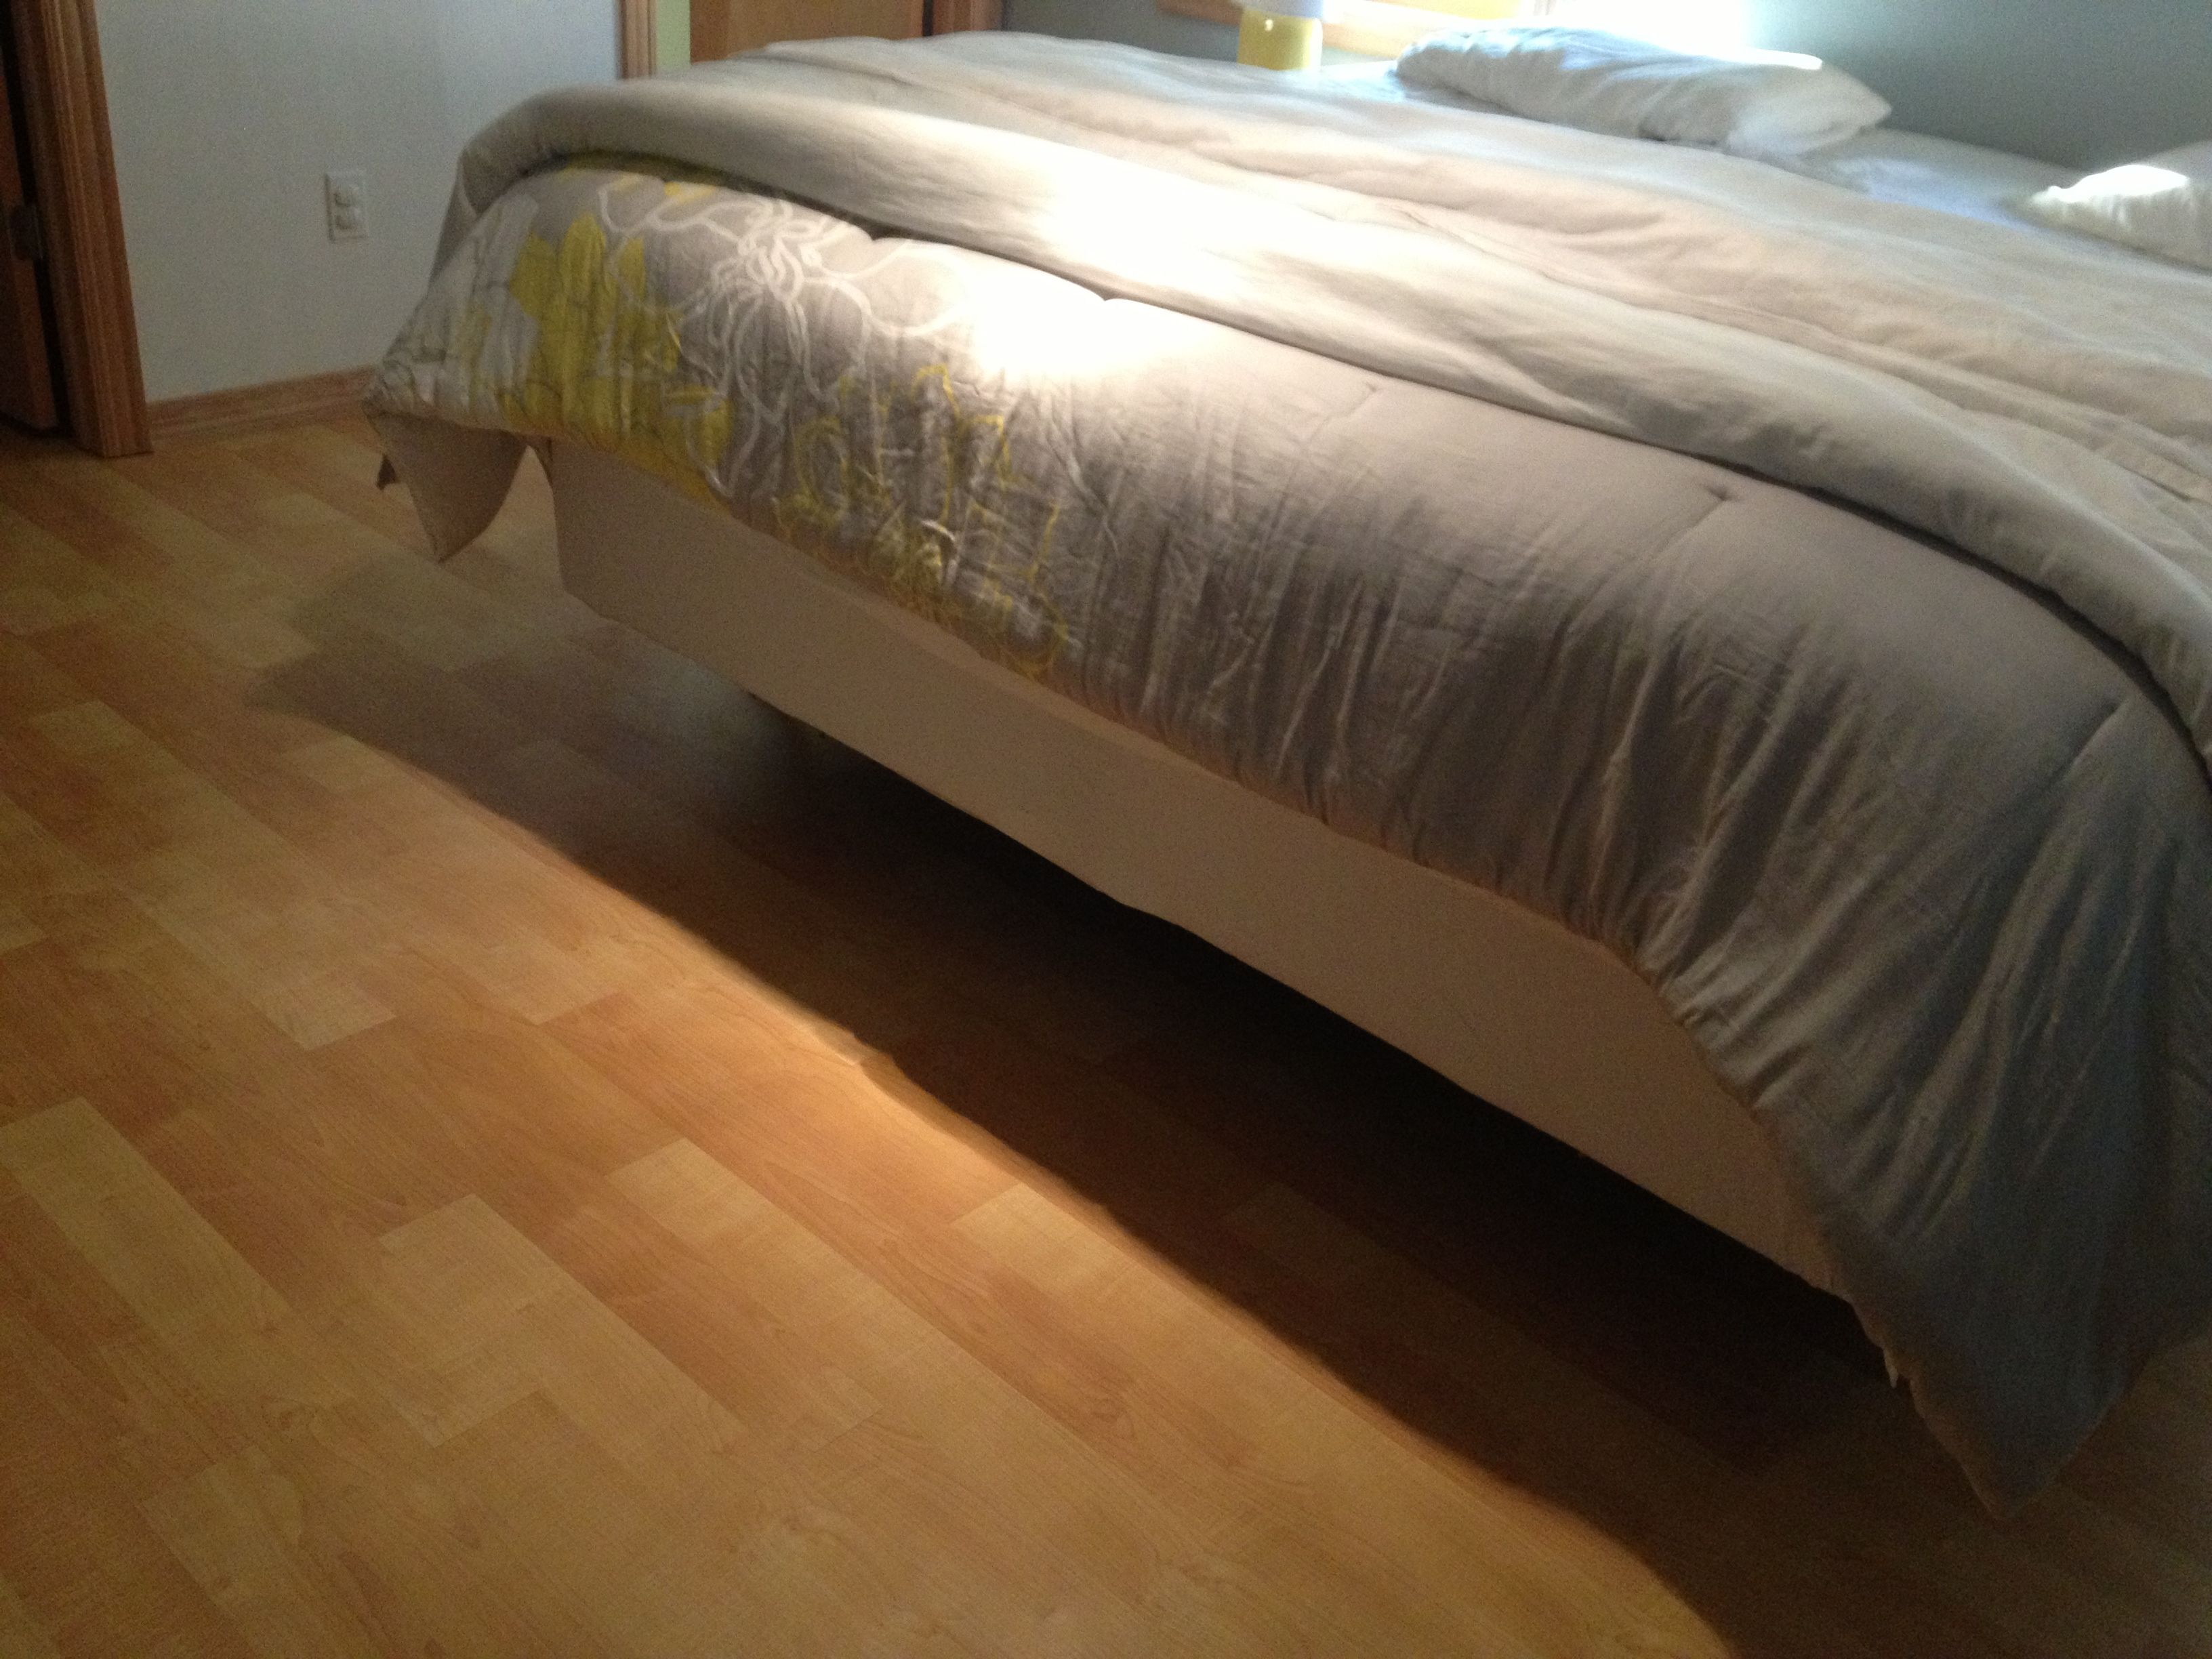 Pseudo platform bed. Gives the clean, streamlined look of